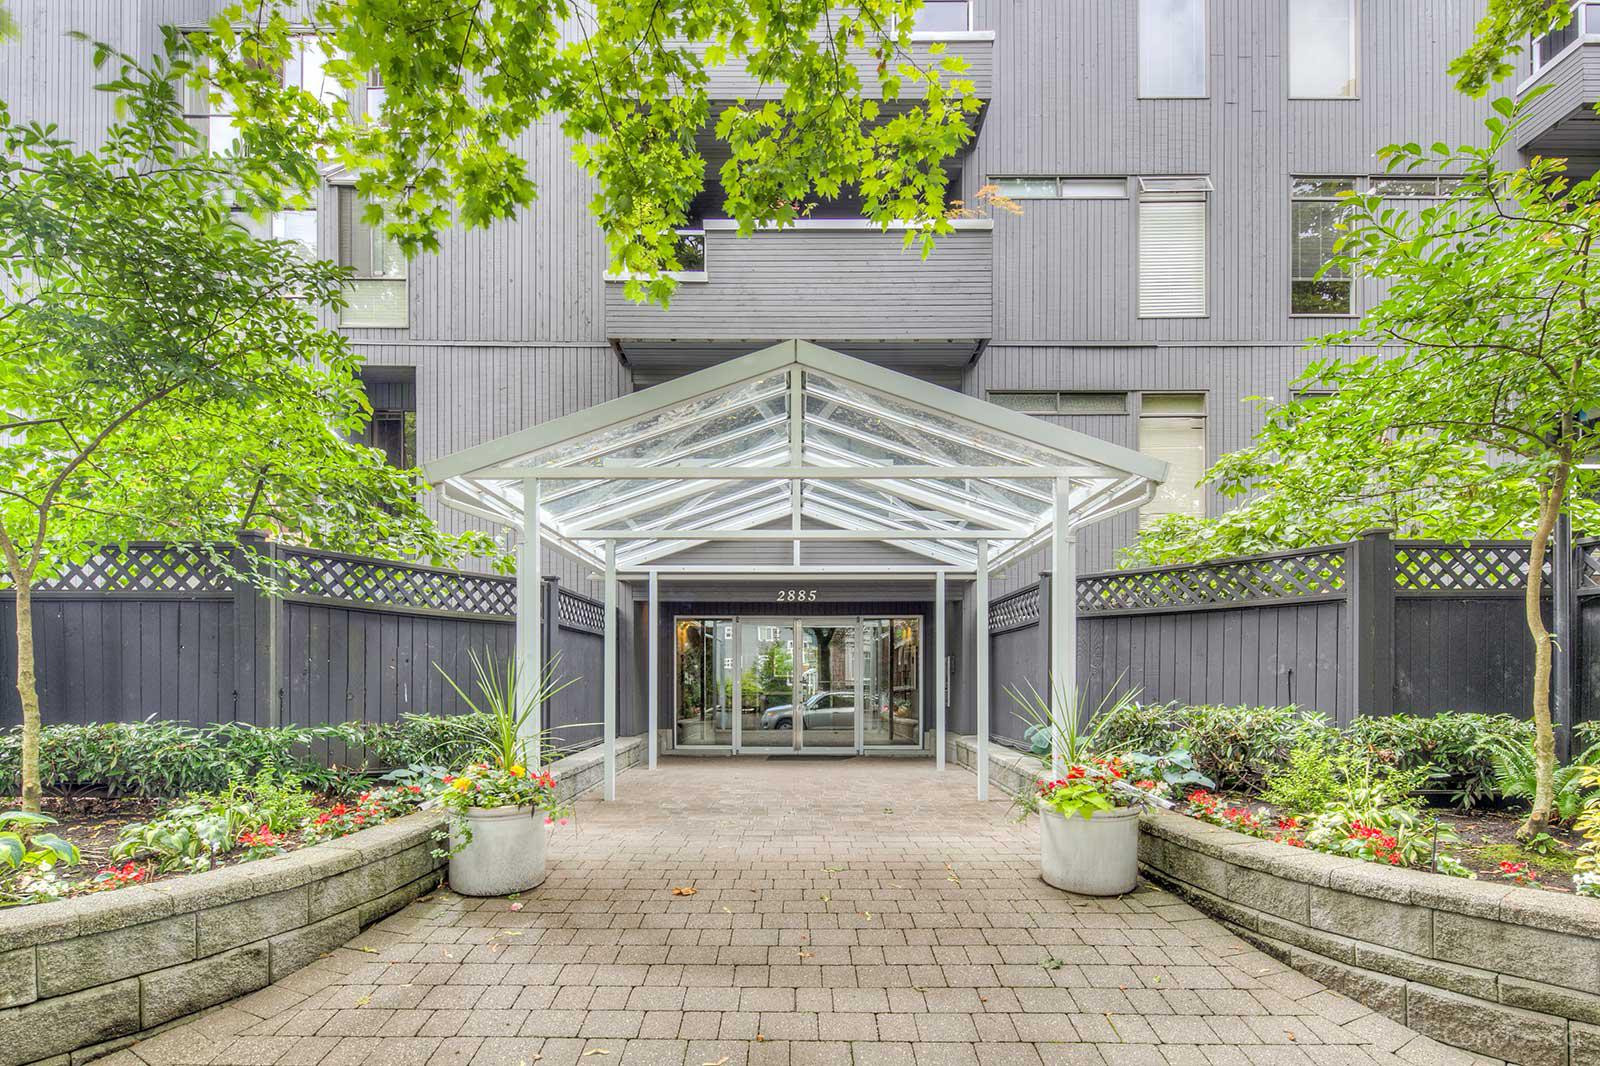 Fairview Gardens at 2885 Spruce St, Vancouver 1